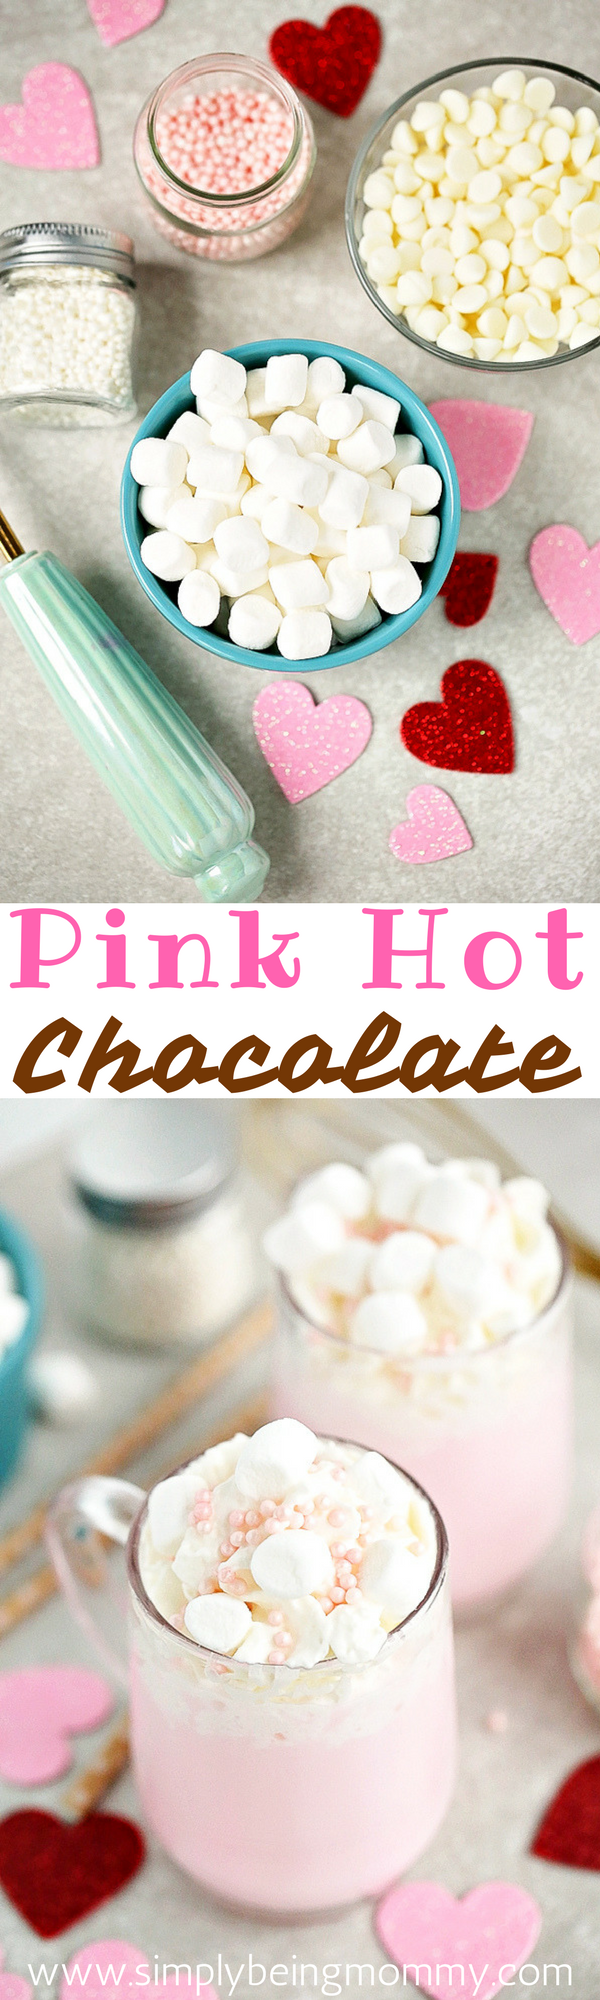 Celebrate Valentine's Day with this warm-you-up, delicious Pink Hot Chocolate. It's super simple to make.